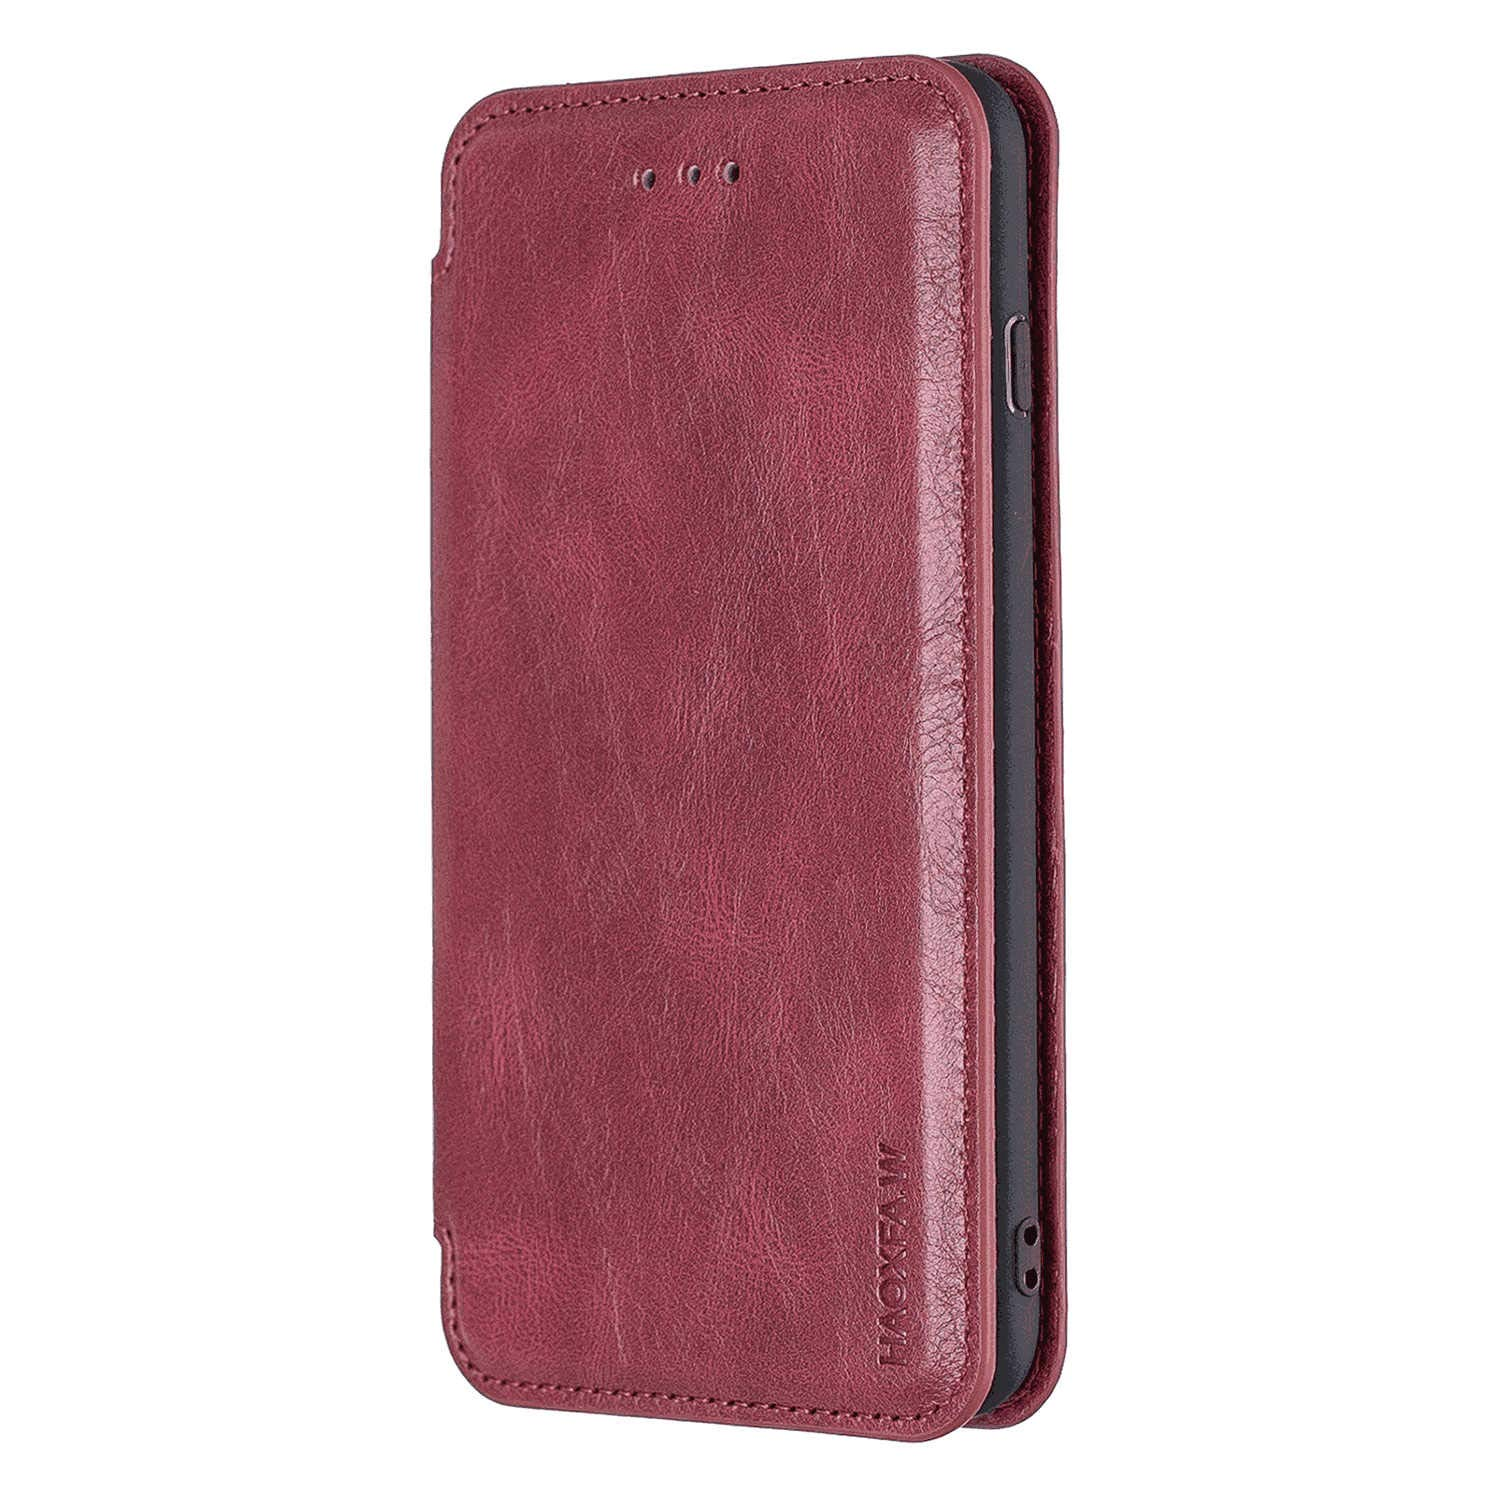 Cover for Leather Mobile Phone case Extra-Protective Business Kickstand Card Holders Flip Cover Samsung Galaxy S10 Plus Flip Case